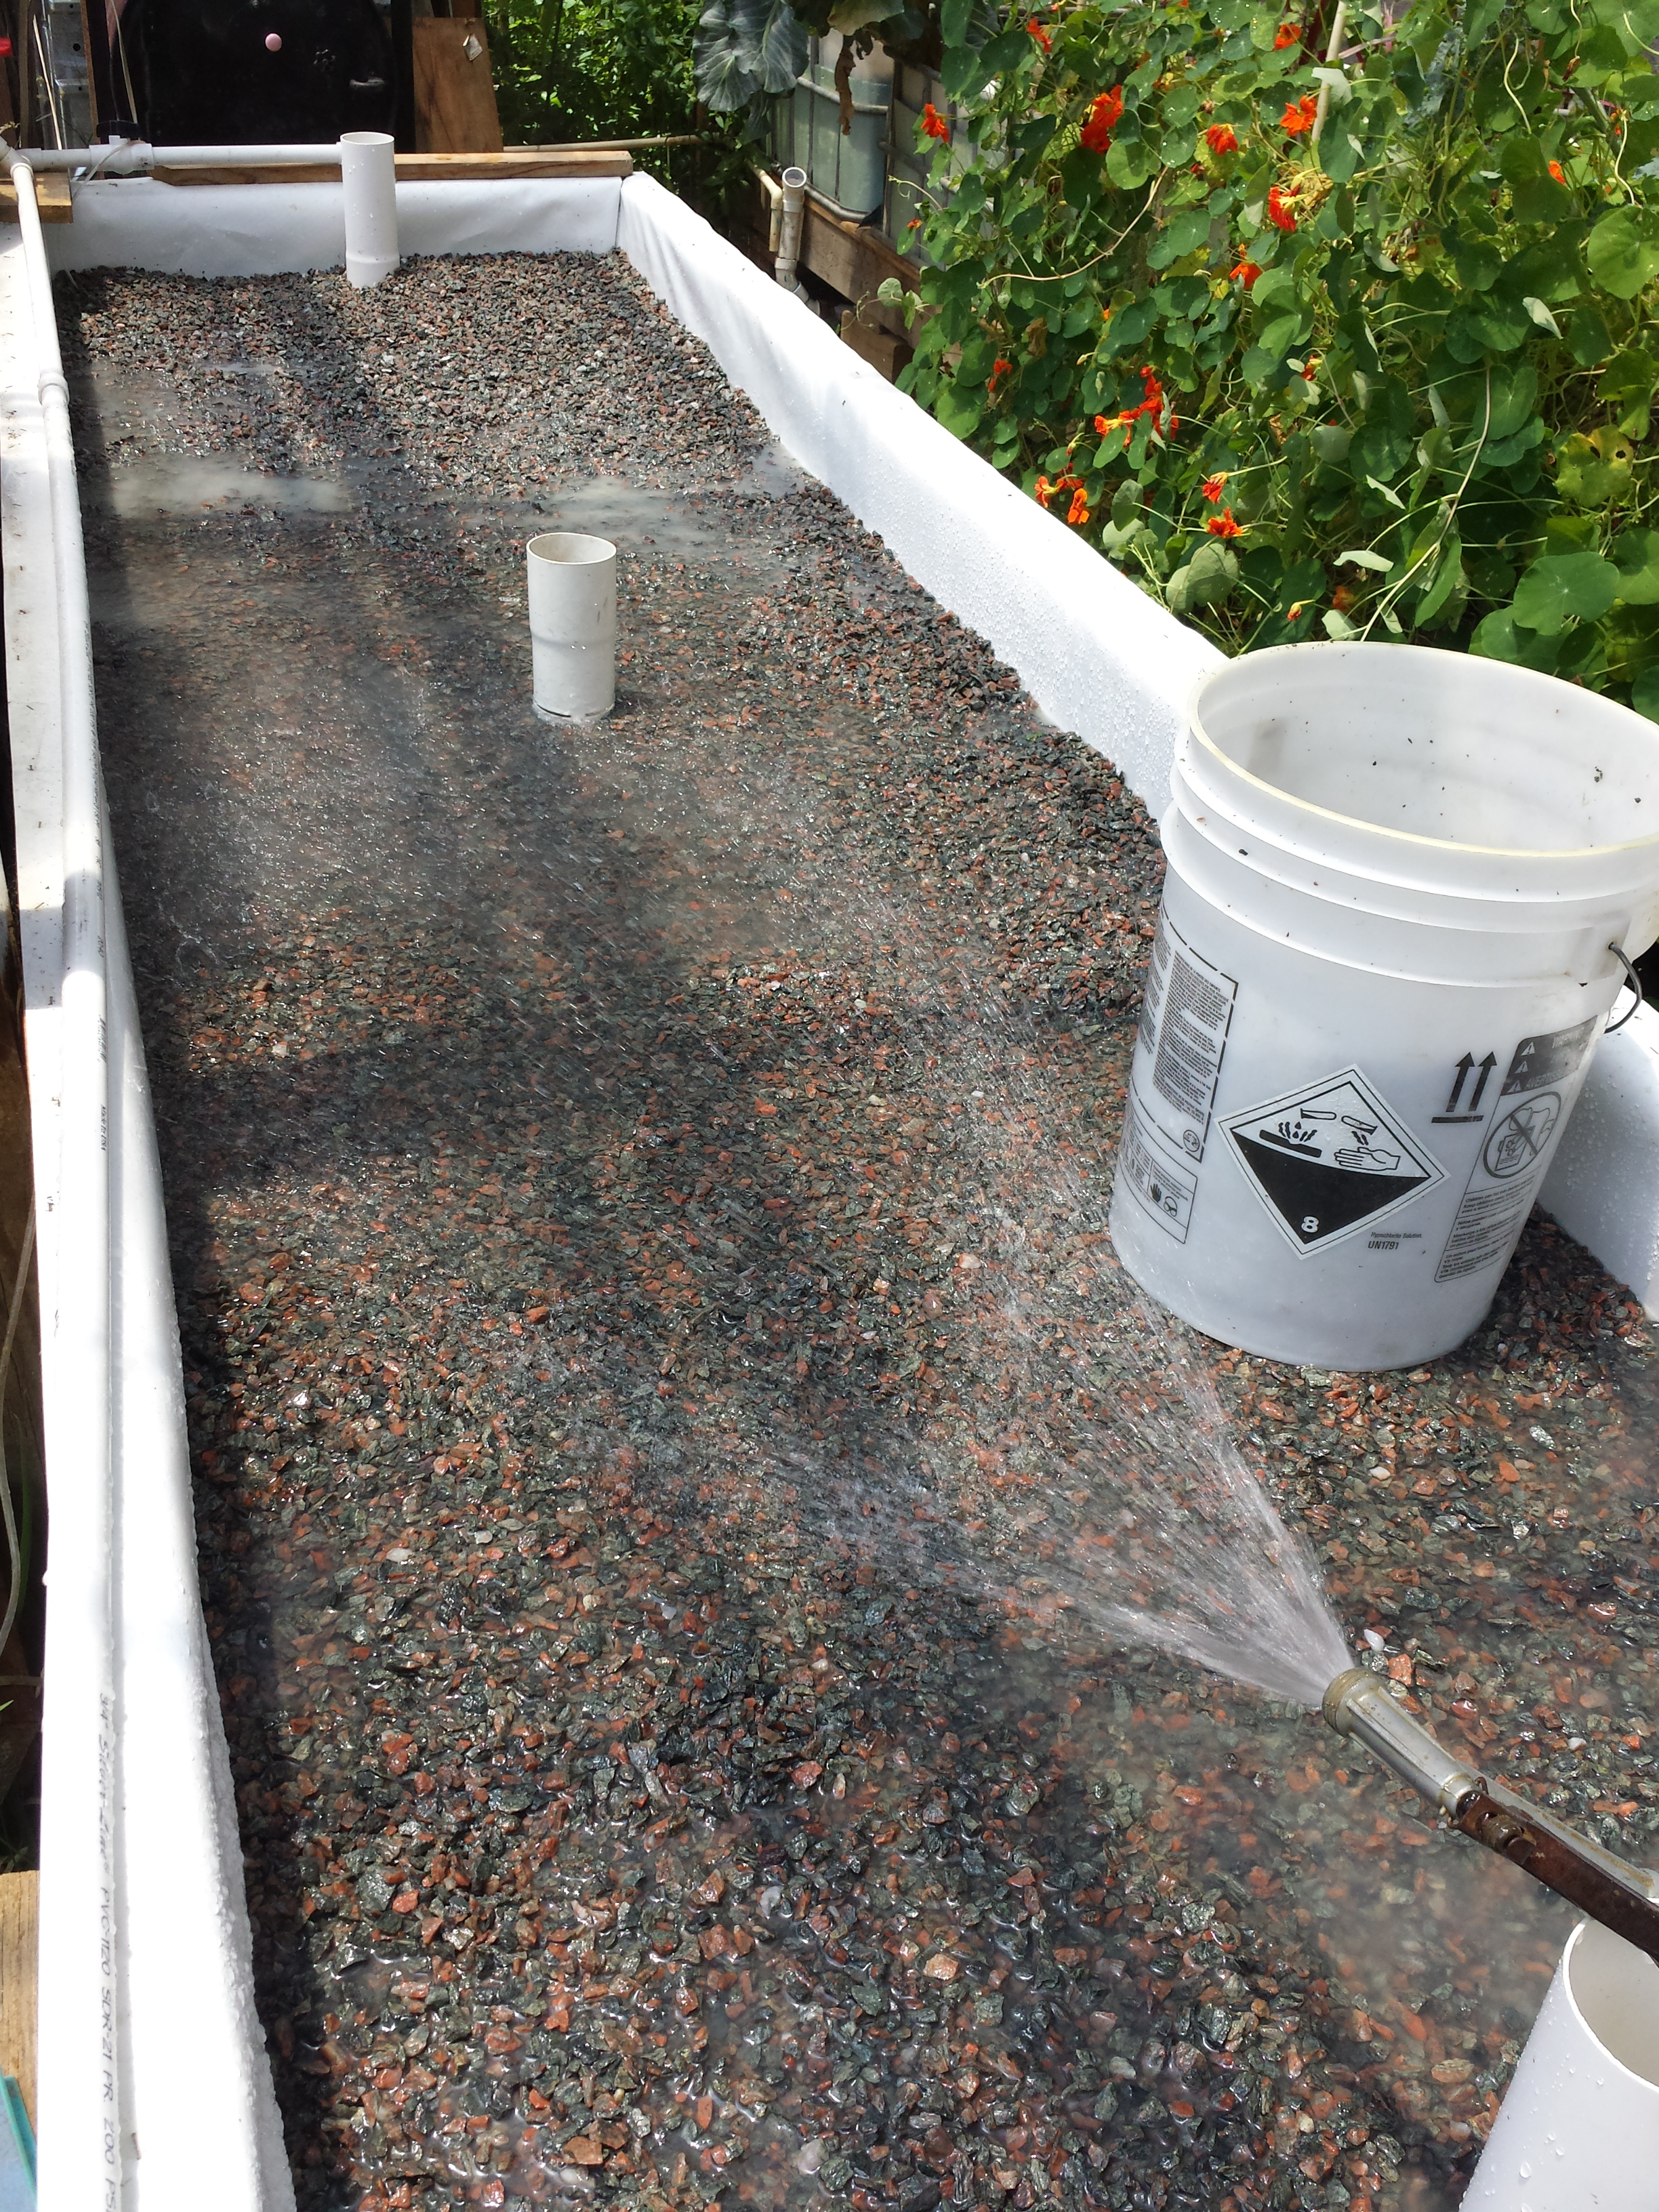 wicking bed growers aquaponic